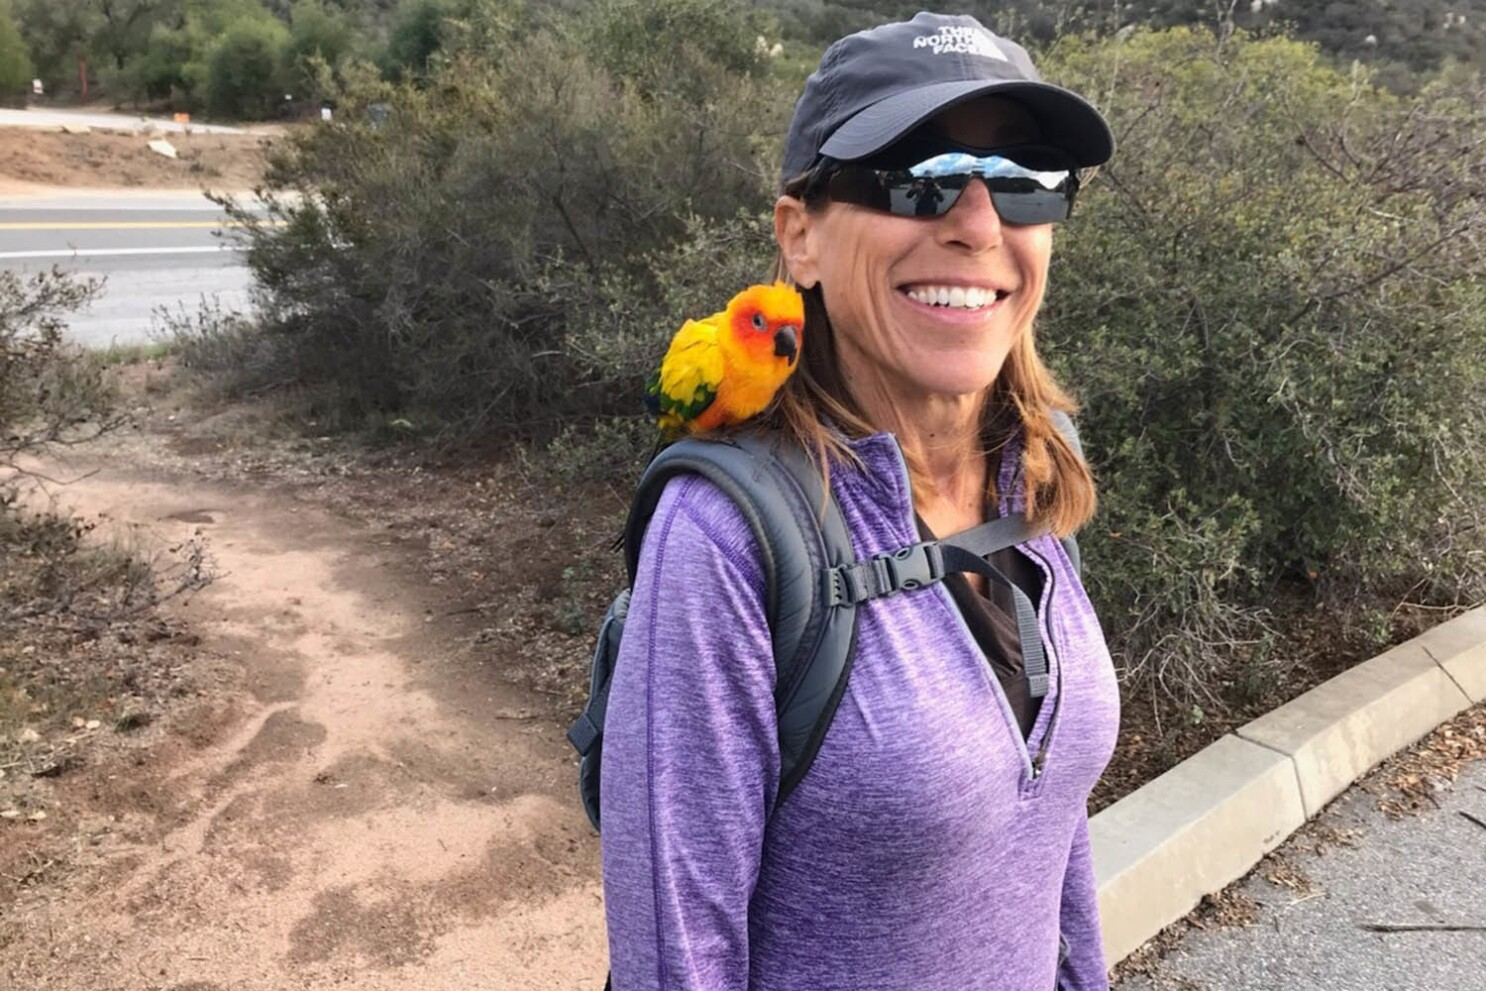 Missing Huntington Beach woman found alive in Inyo County